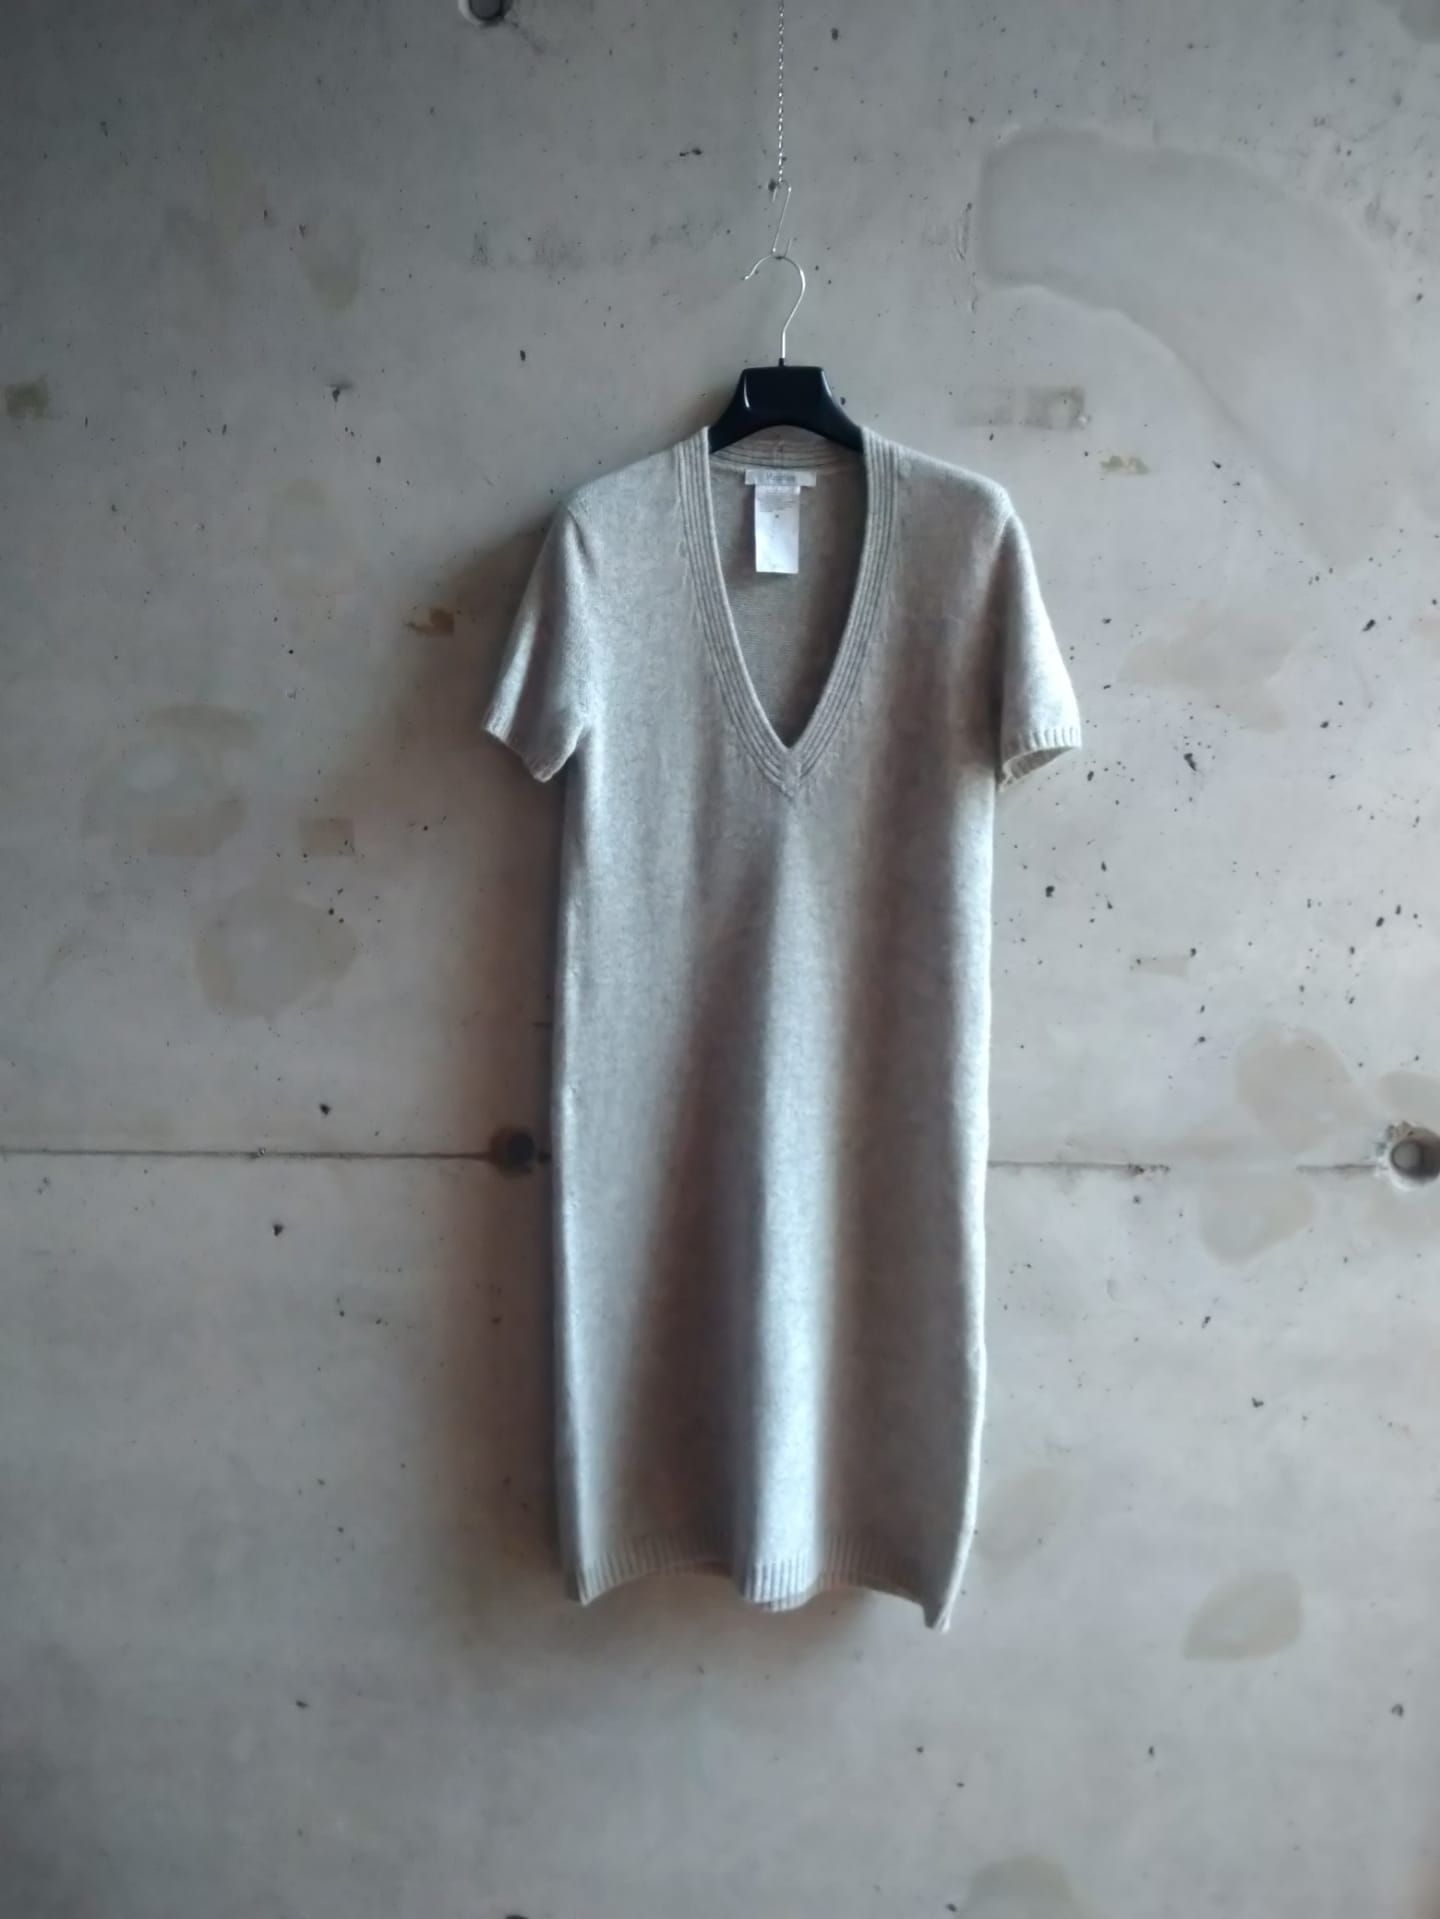 Max Mara cashmere dress